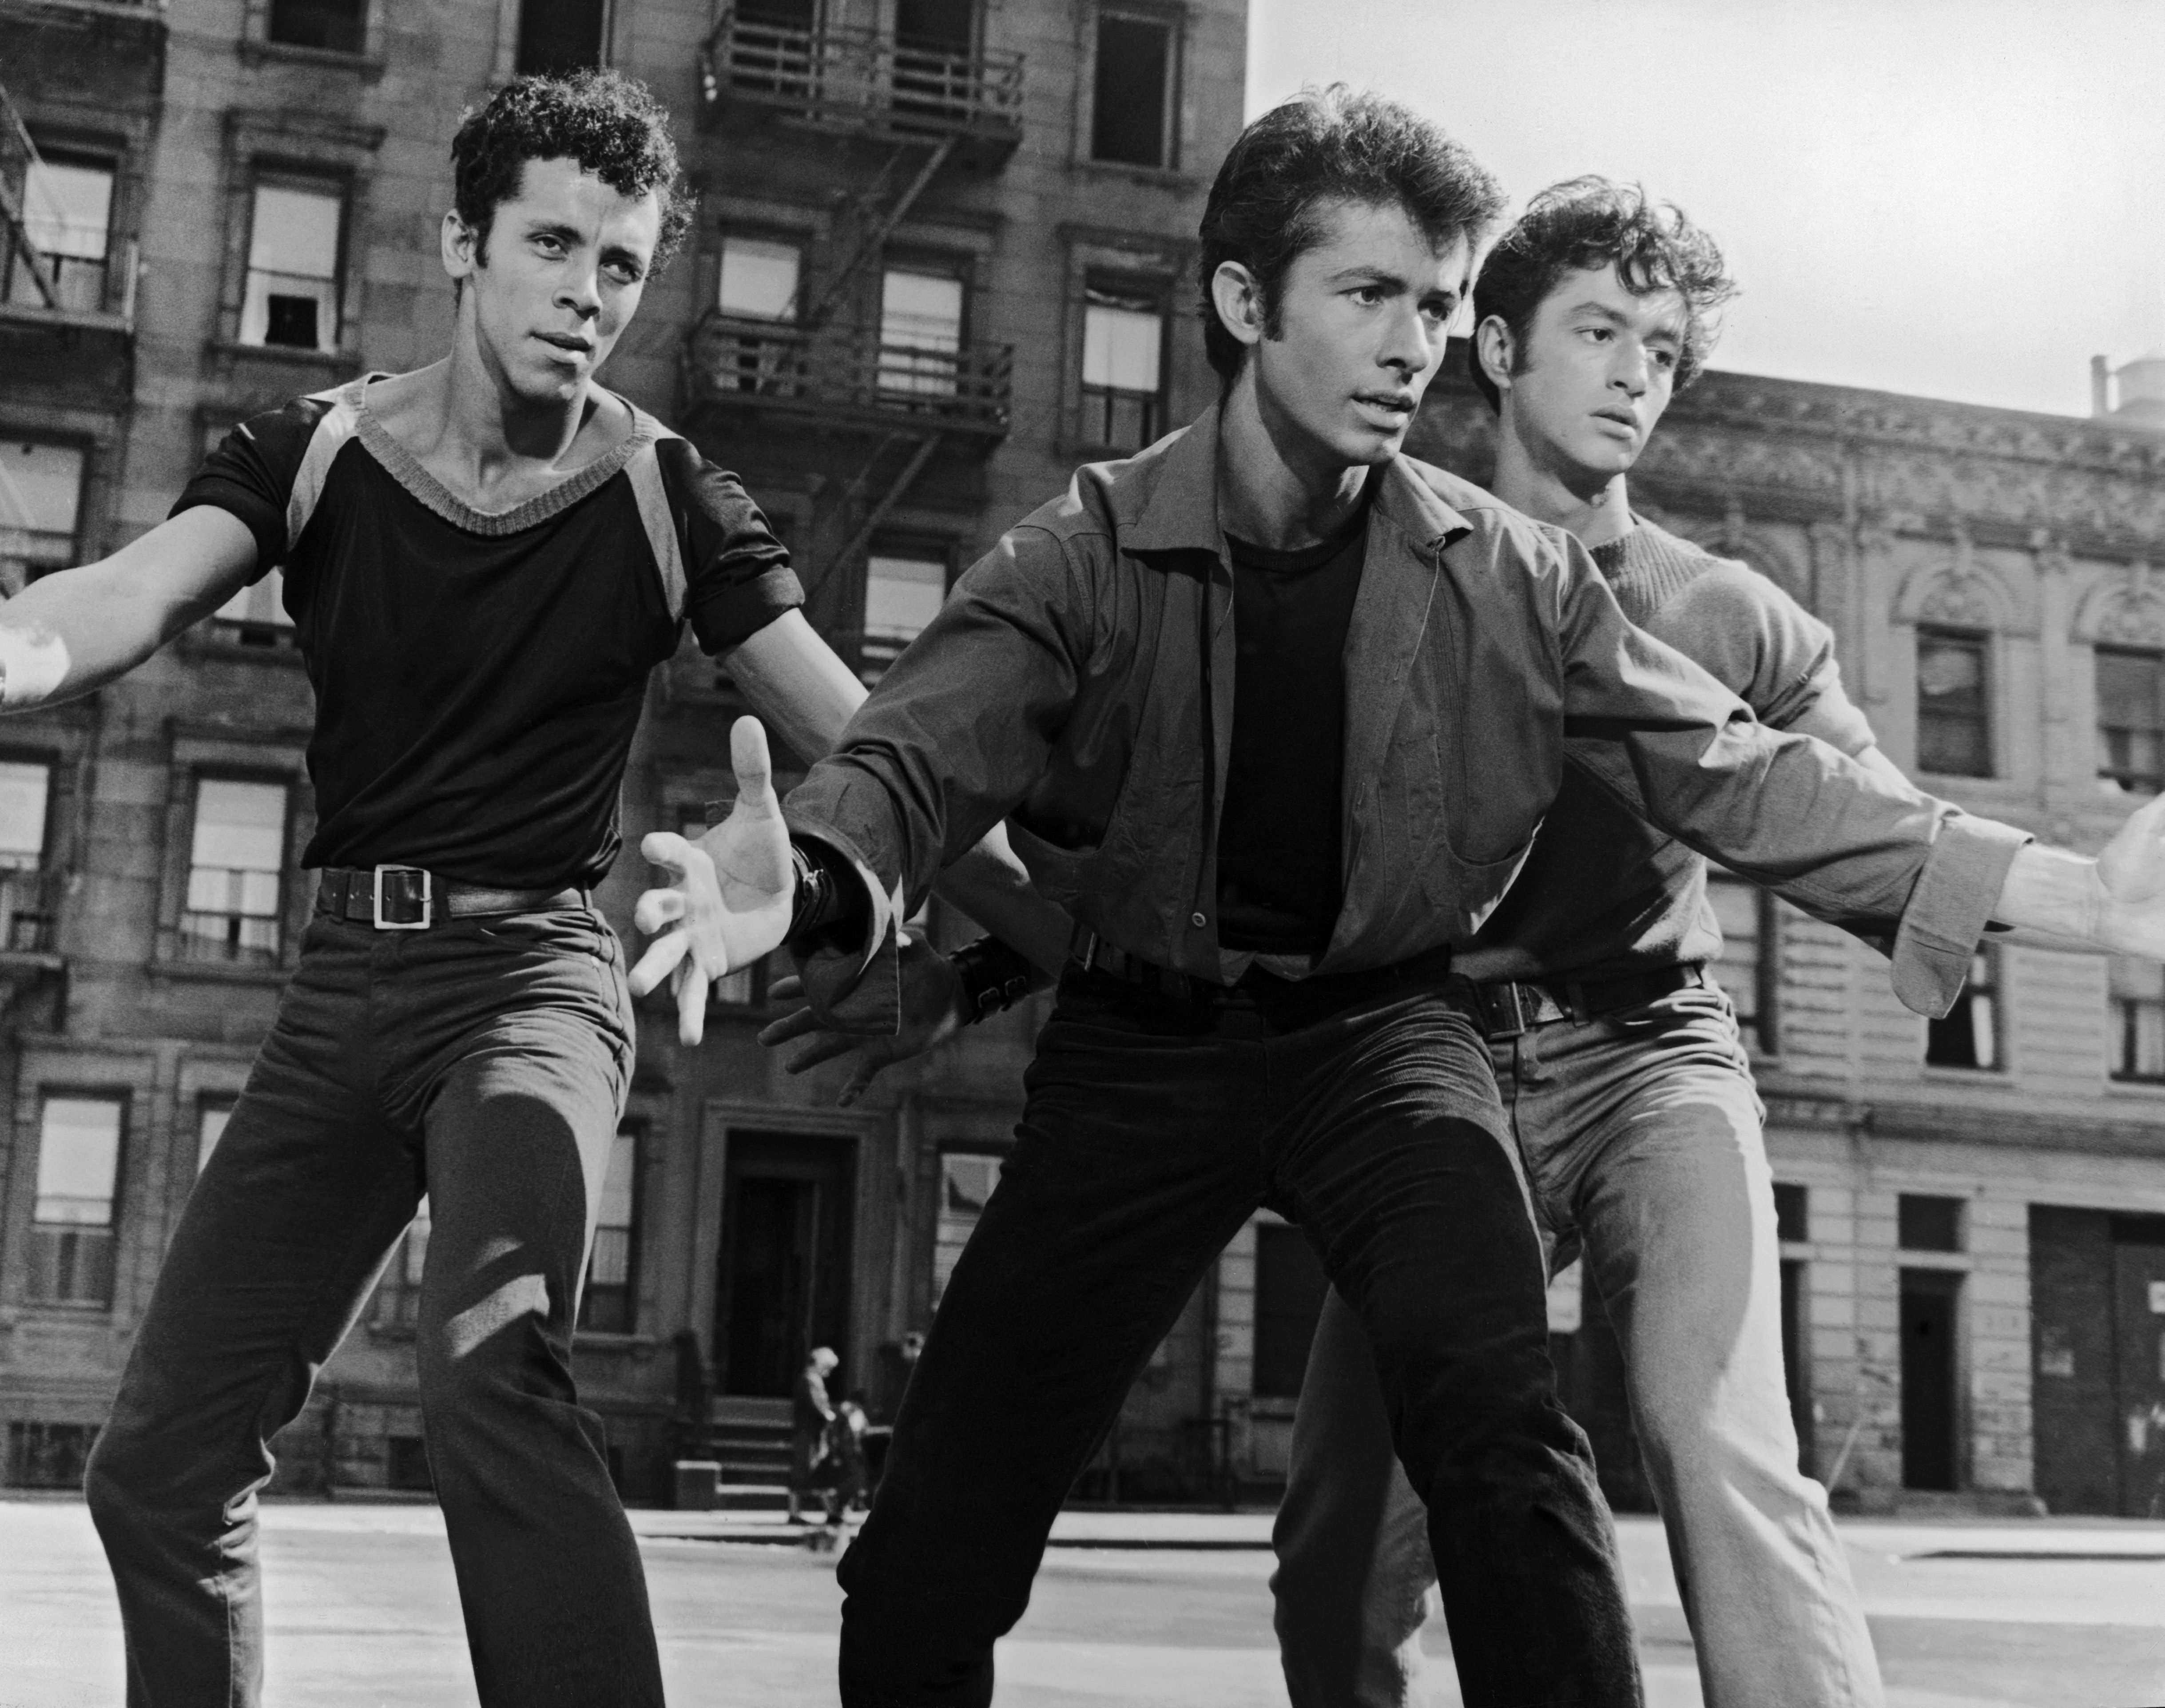 The 1961 film cast of West Side Story